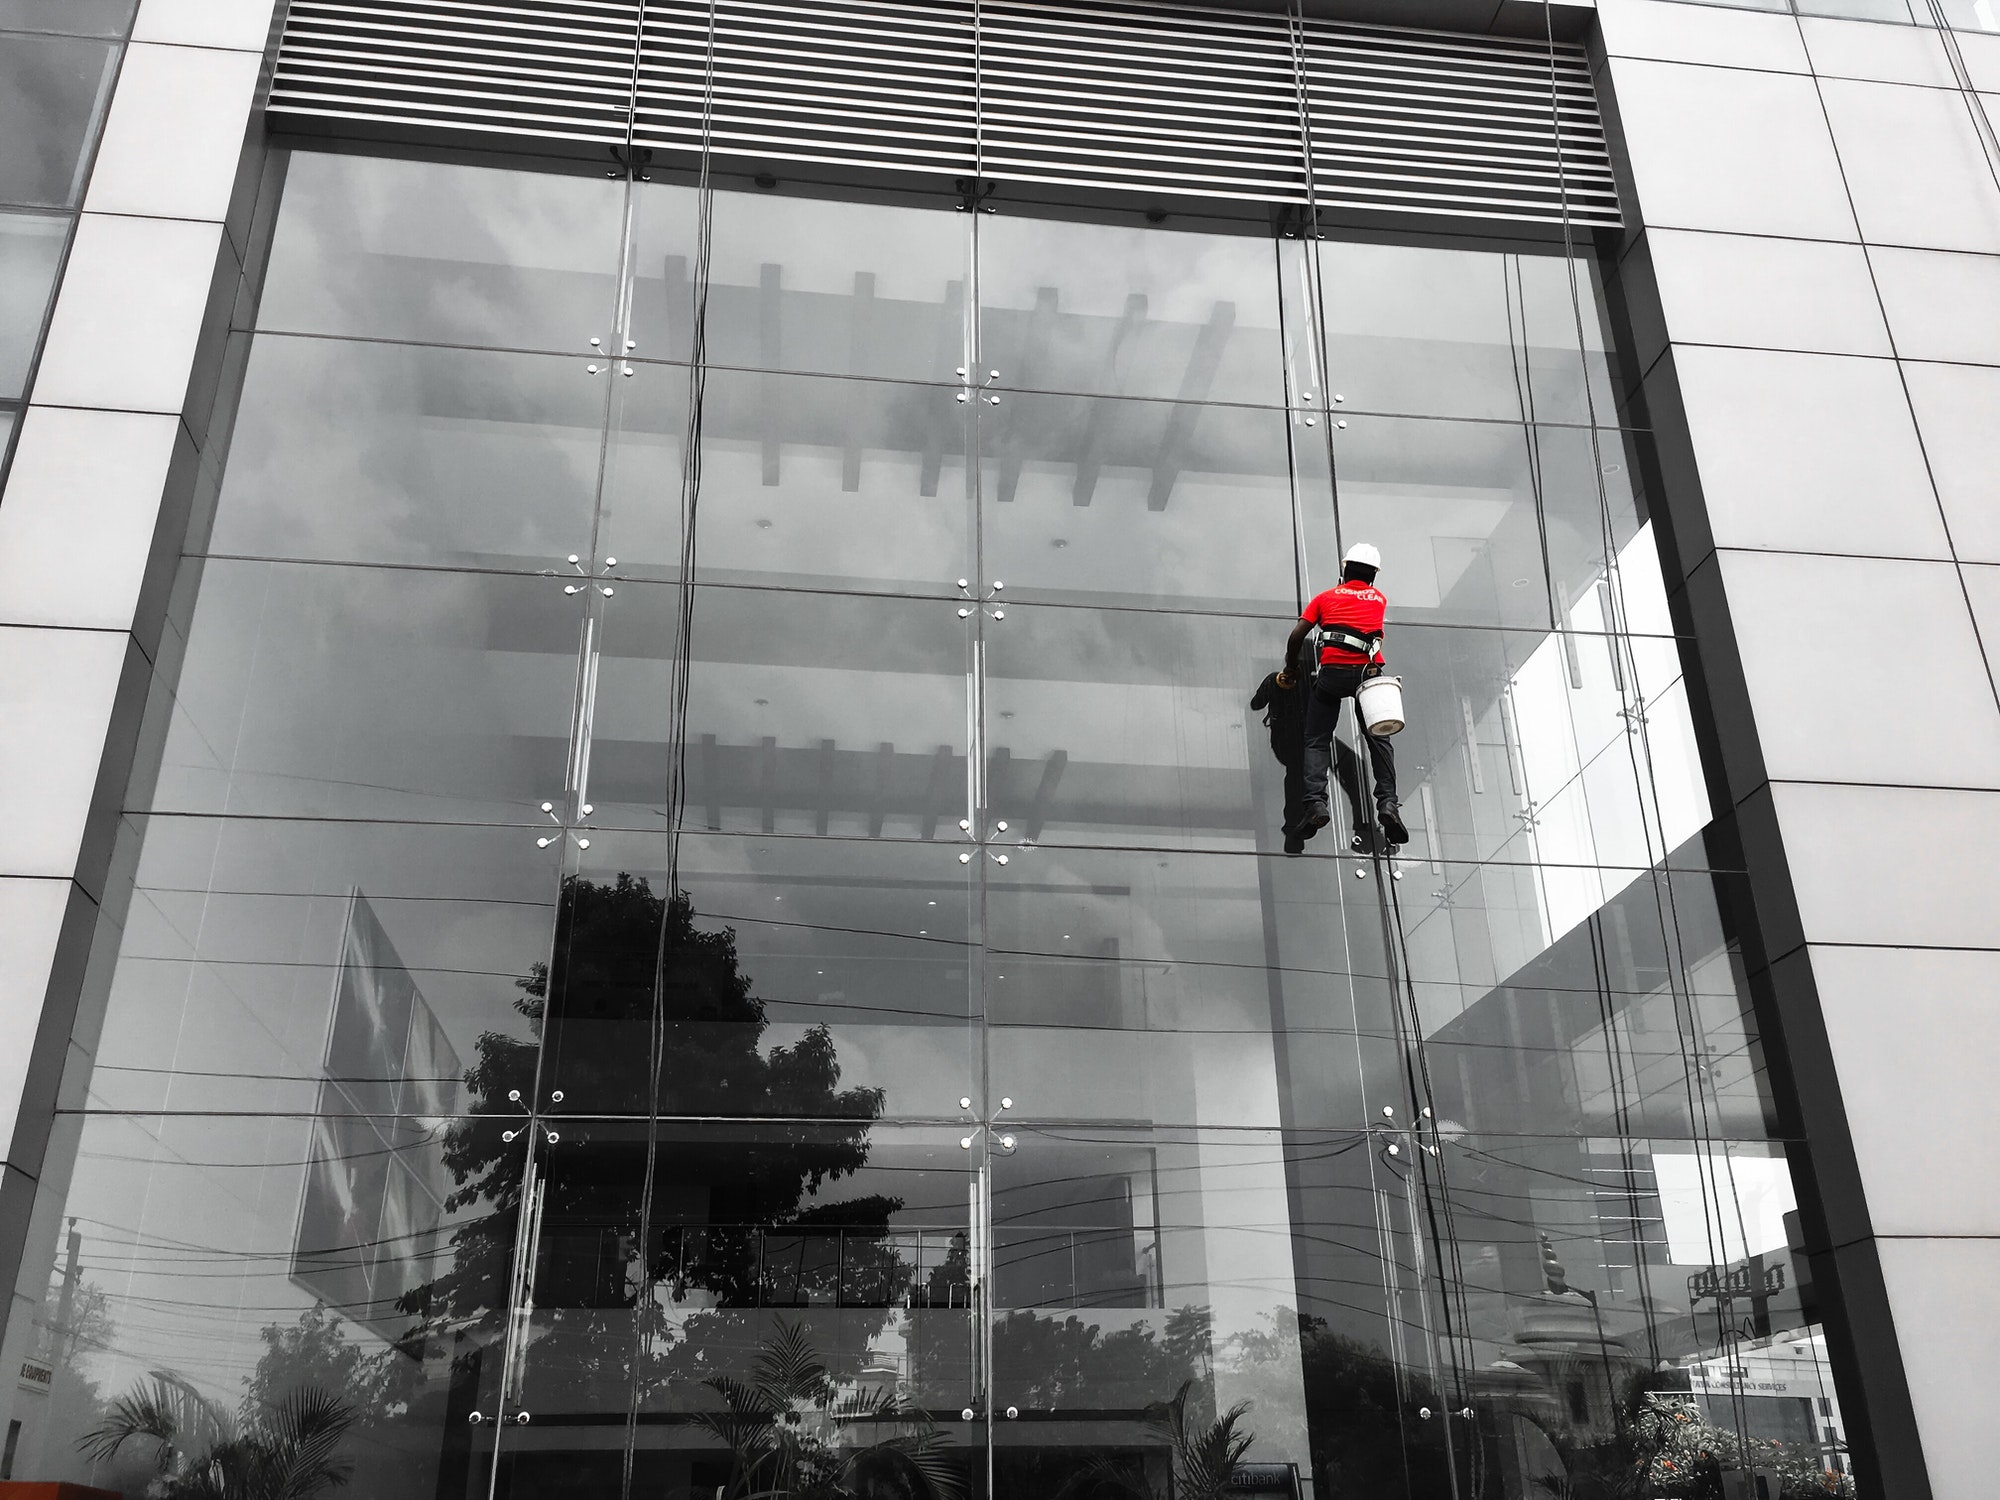 Glass building cleaning services